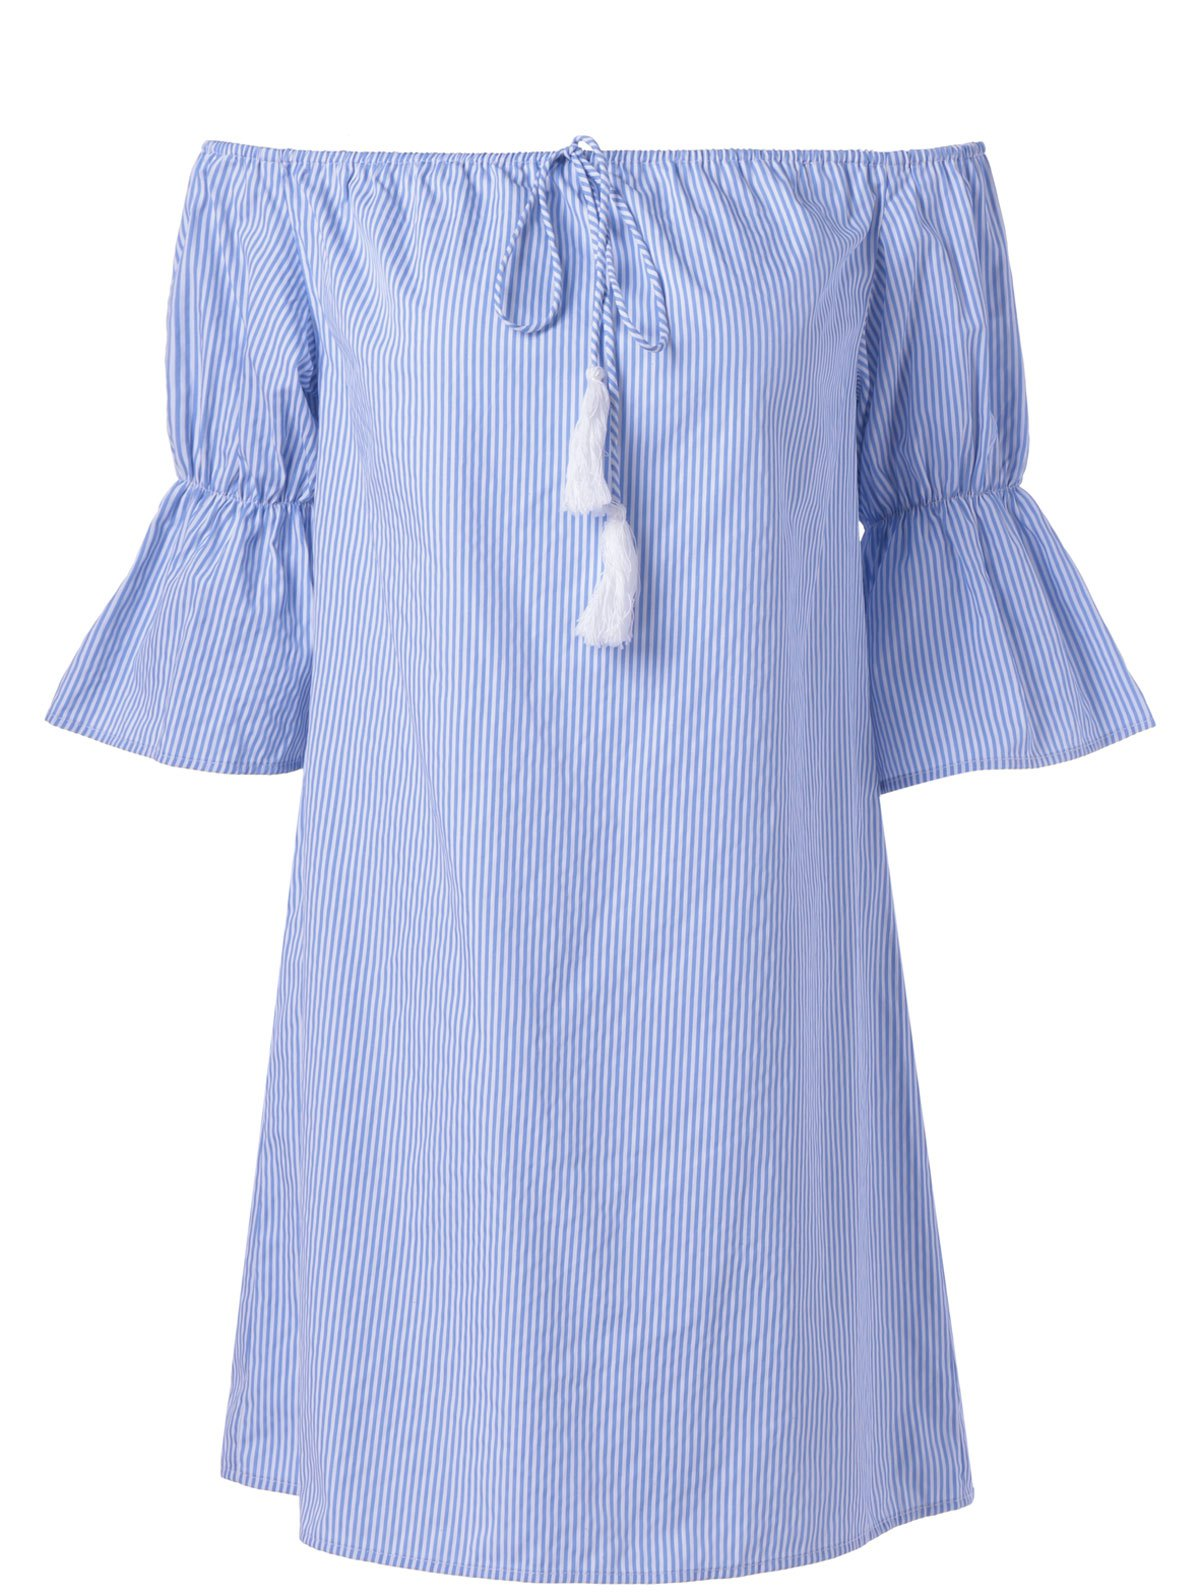 Sale Casual Bell Sleeves Off-The Shoulder Stripe Dress For Women